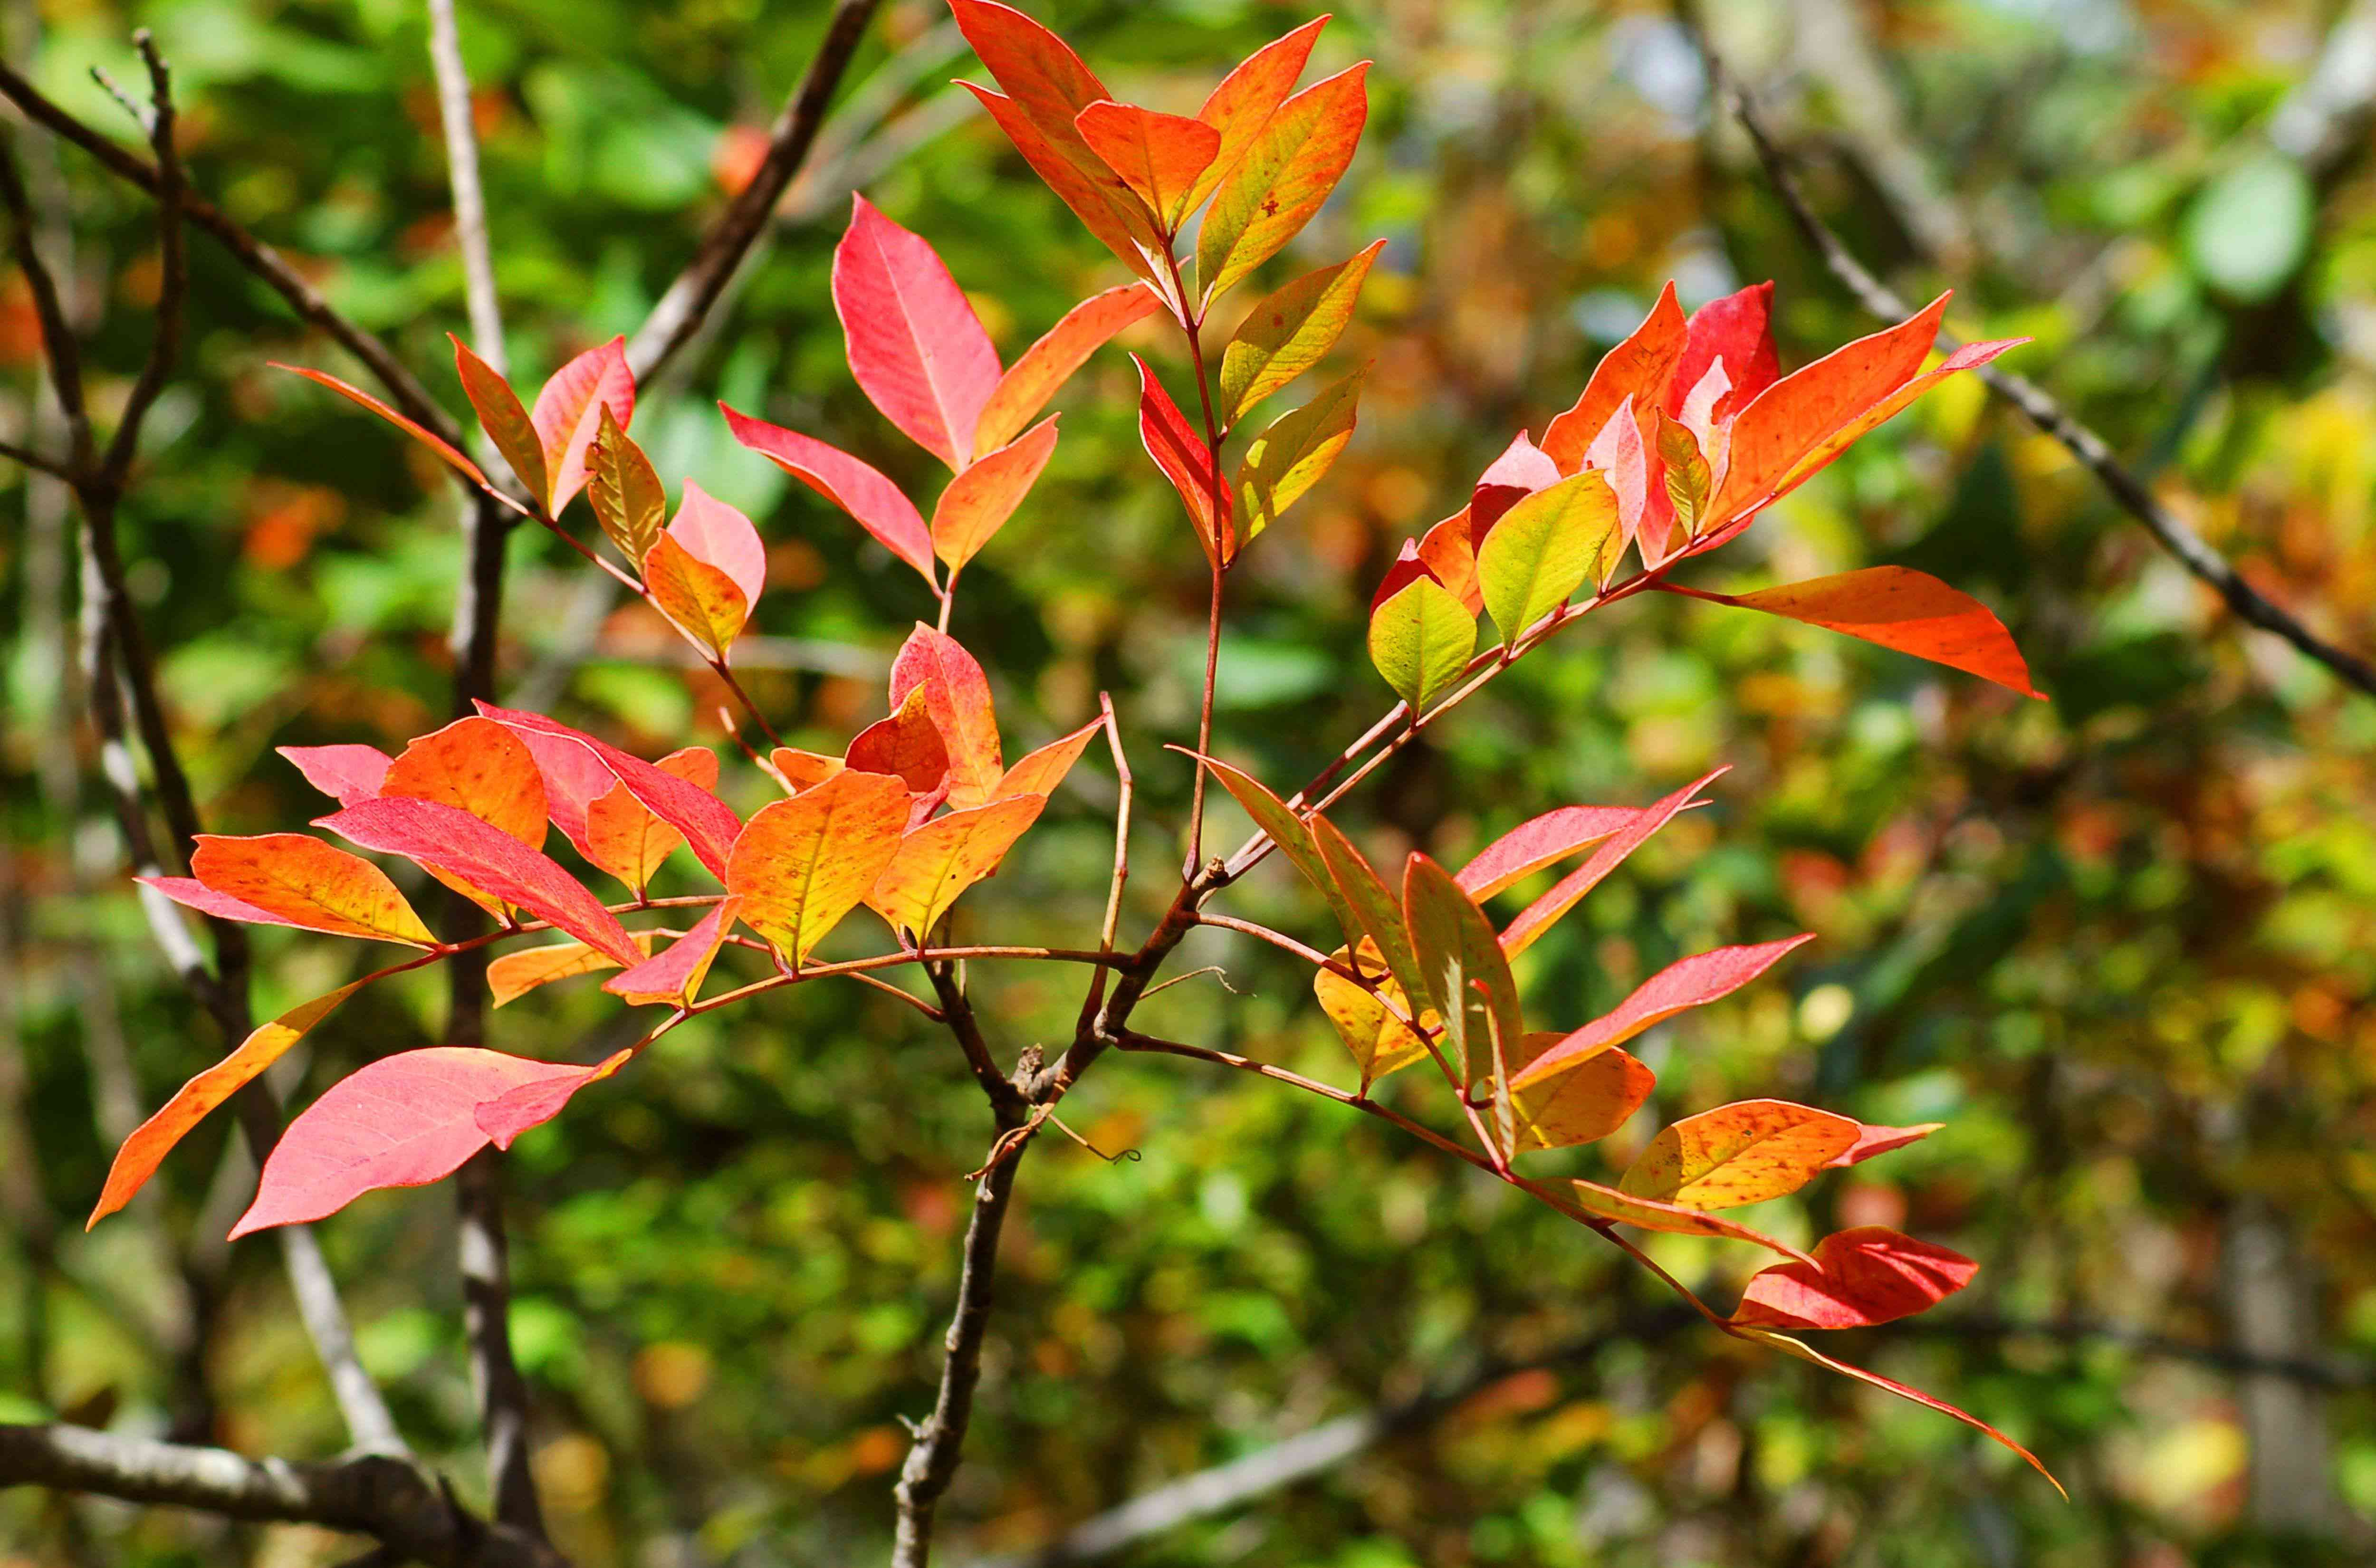 Poison sumac shrub branch with red and orange leaves in sunlight